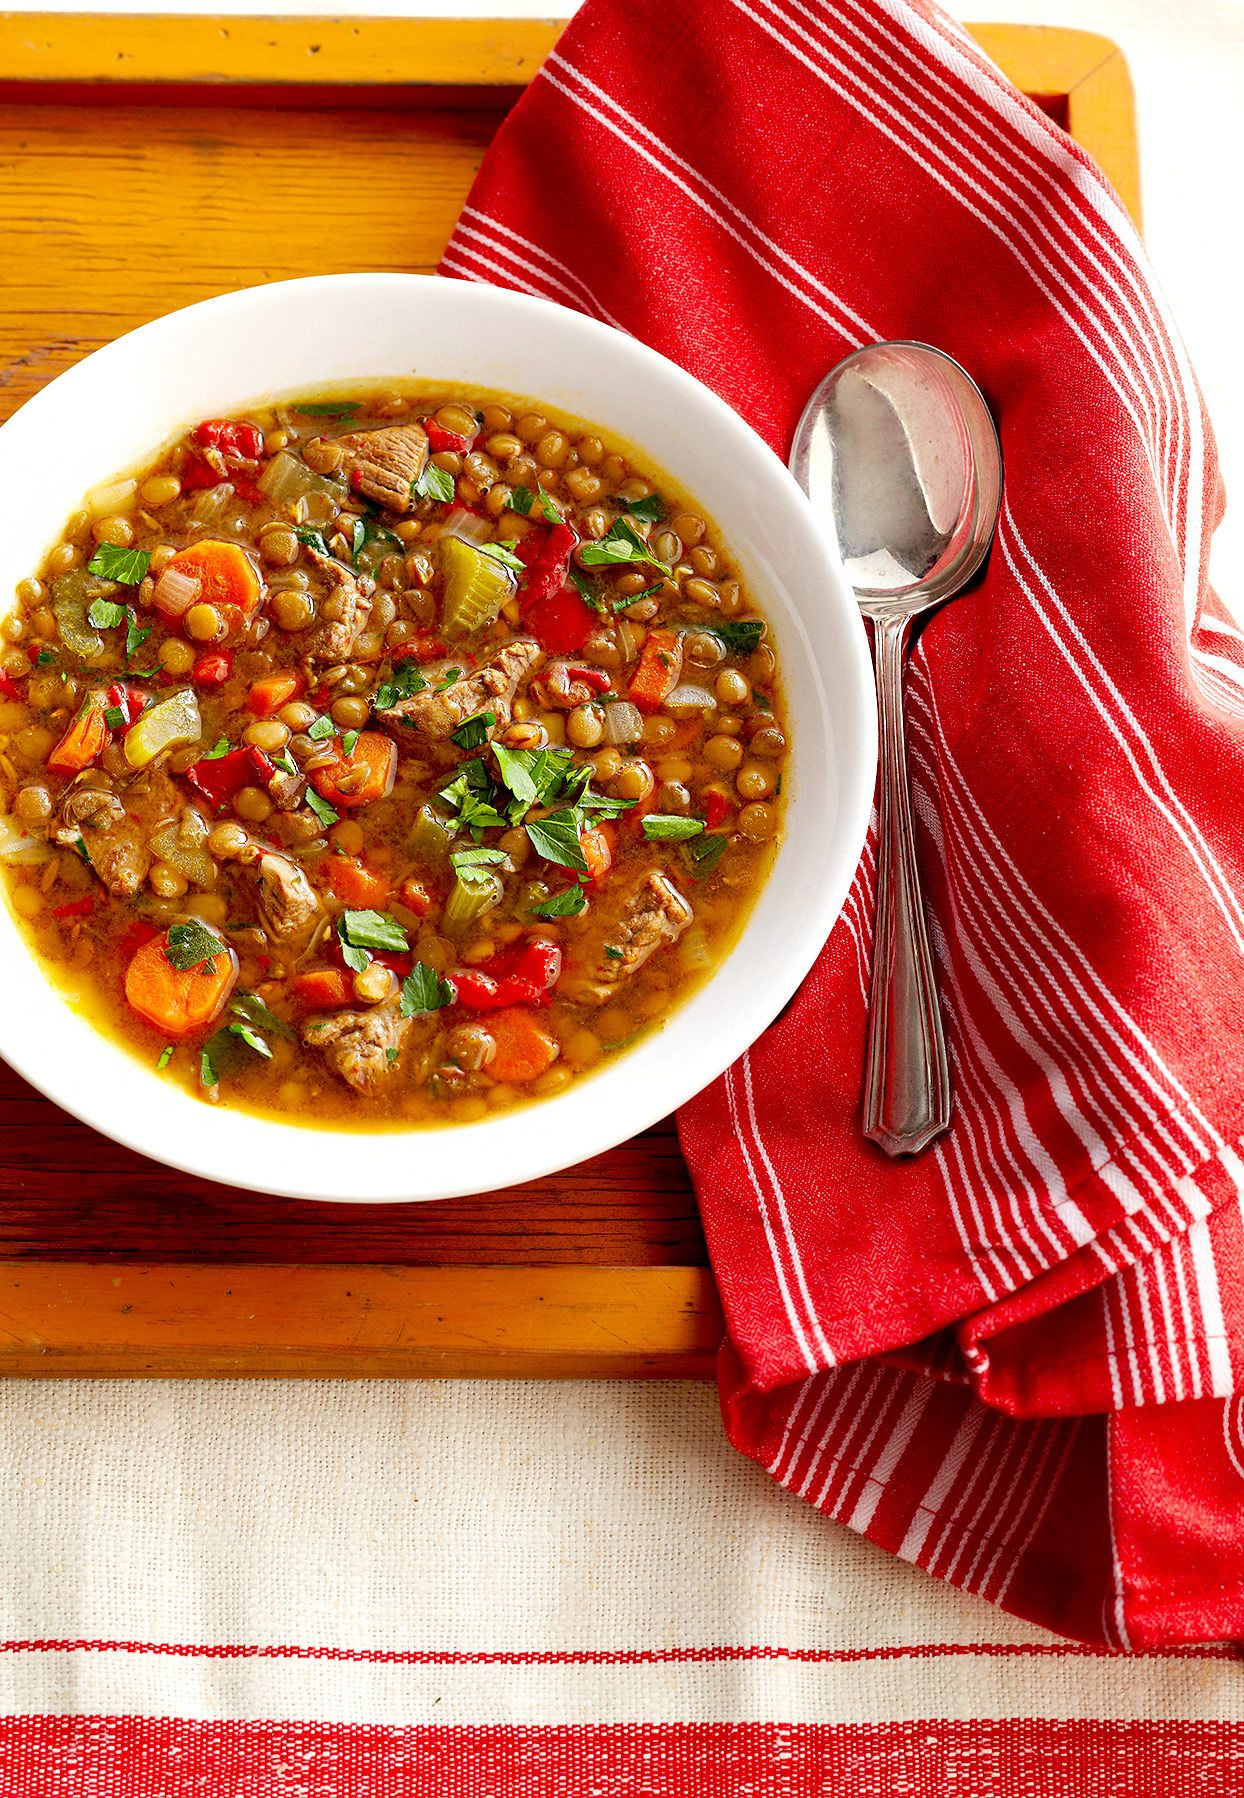 6ff422a017275c7fc578bb7c258c81d3 - Chorizo And Lentil Soup Better Homes And Gardens